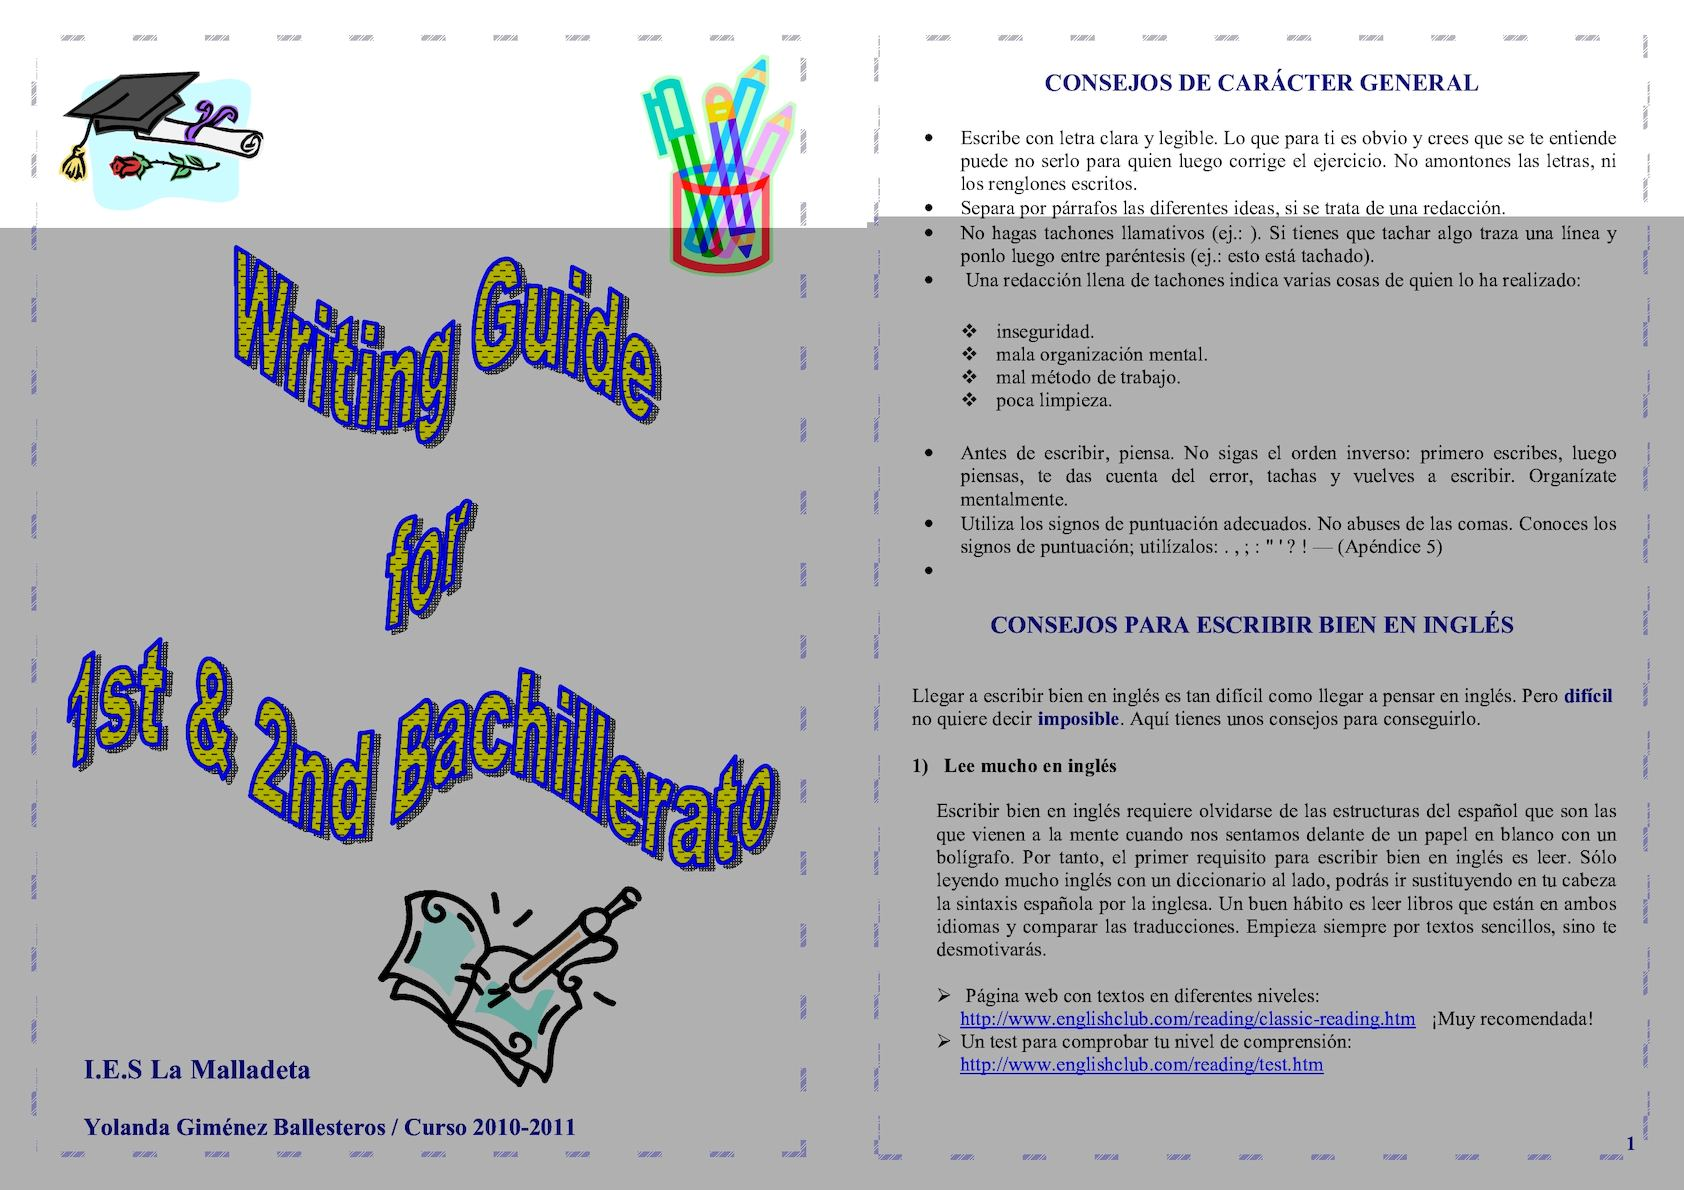 Writing Guide For 1st & 2nd Bachillerato (1)